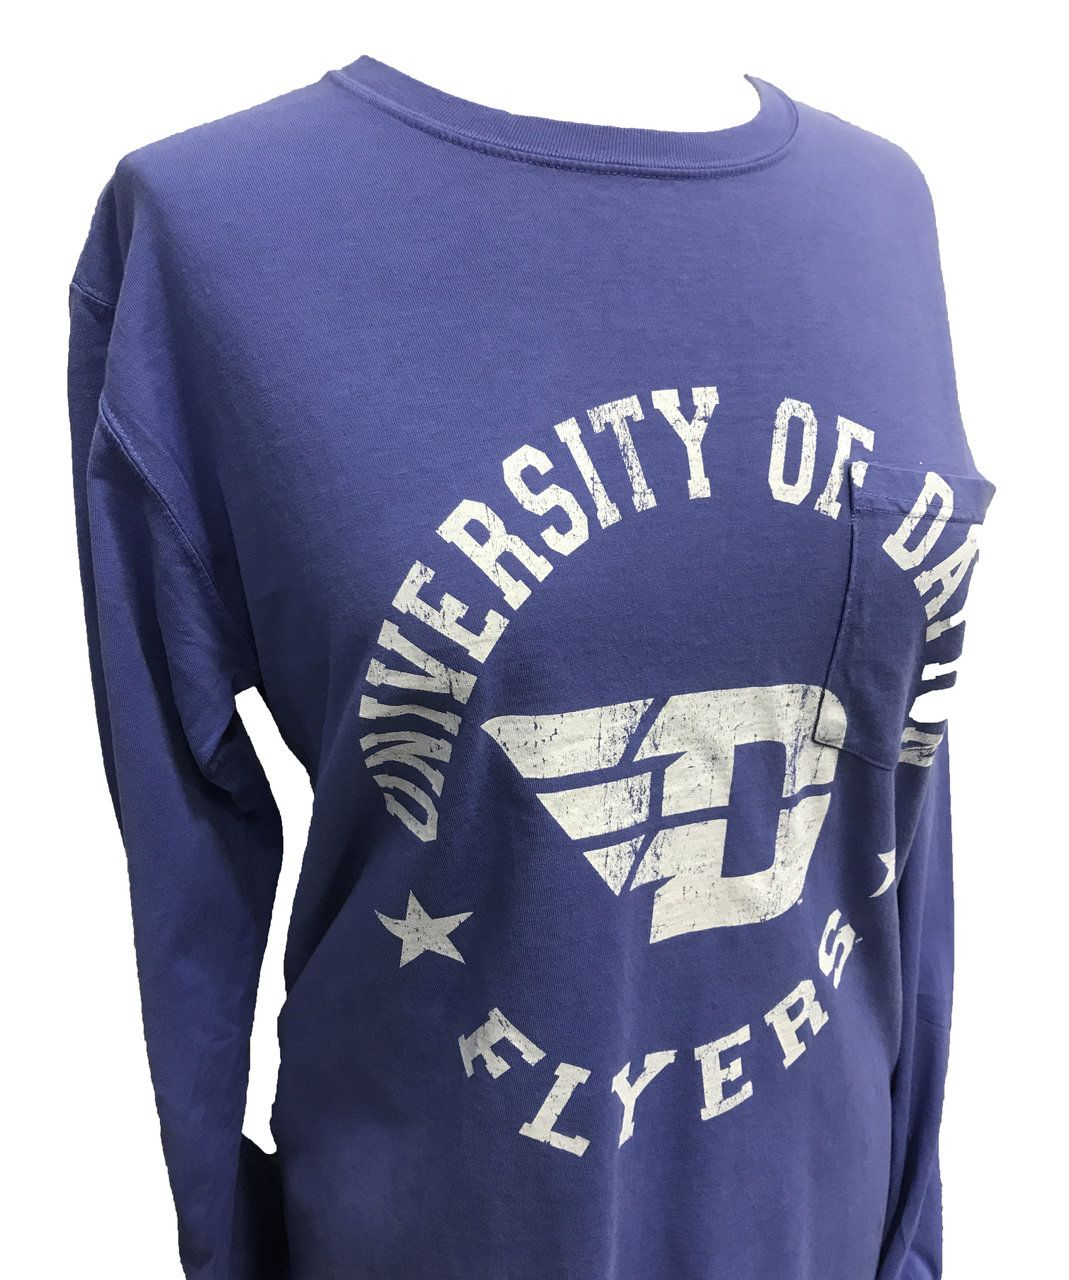 Circle around a Star Logo - COMFORT WASH LS GARMENT DYED LC- UNIVERSITY OF DAYTON STAR FLYERS ...